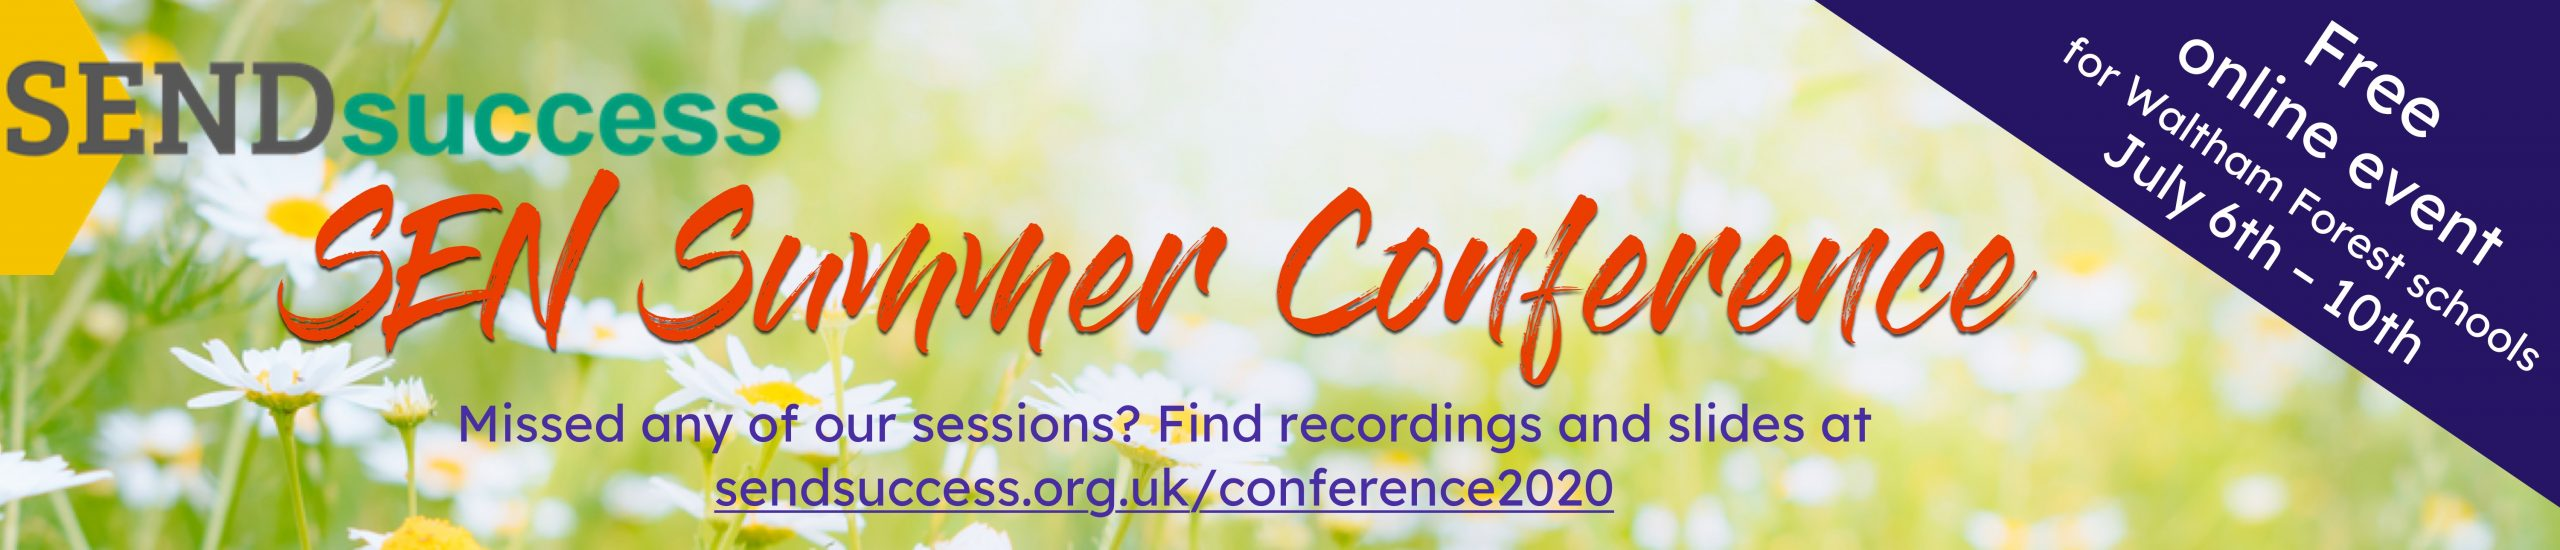 Advert for the SEN Summer conference